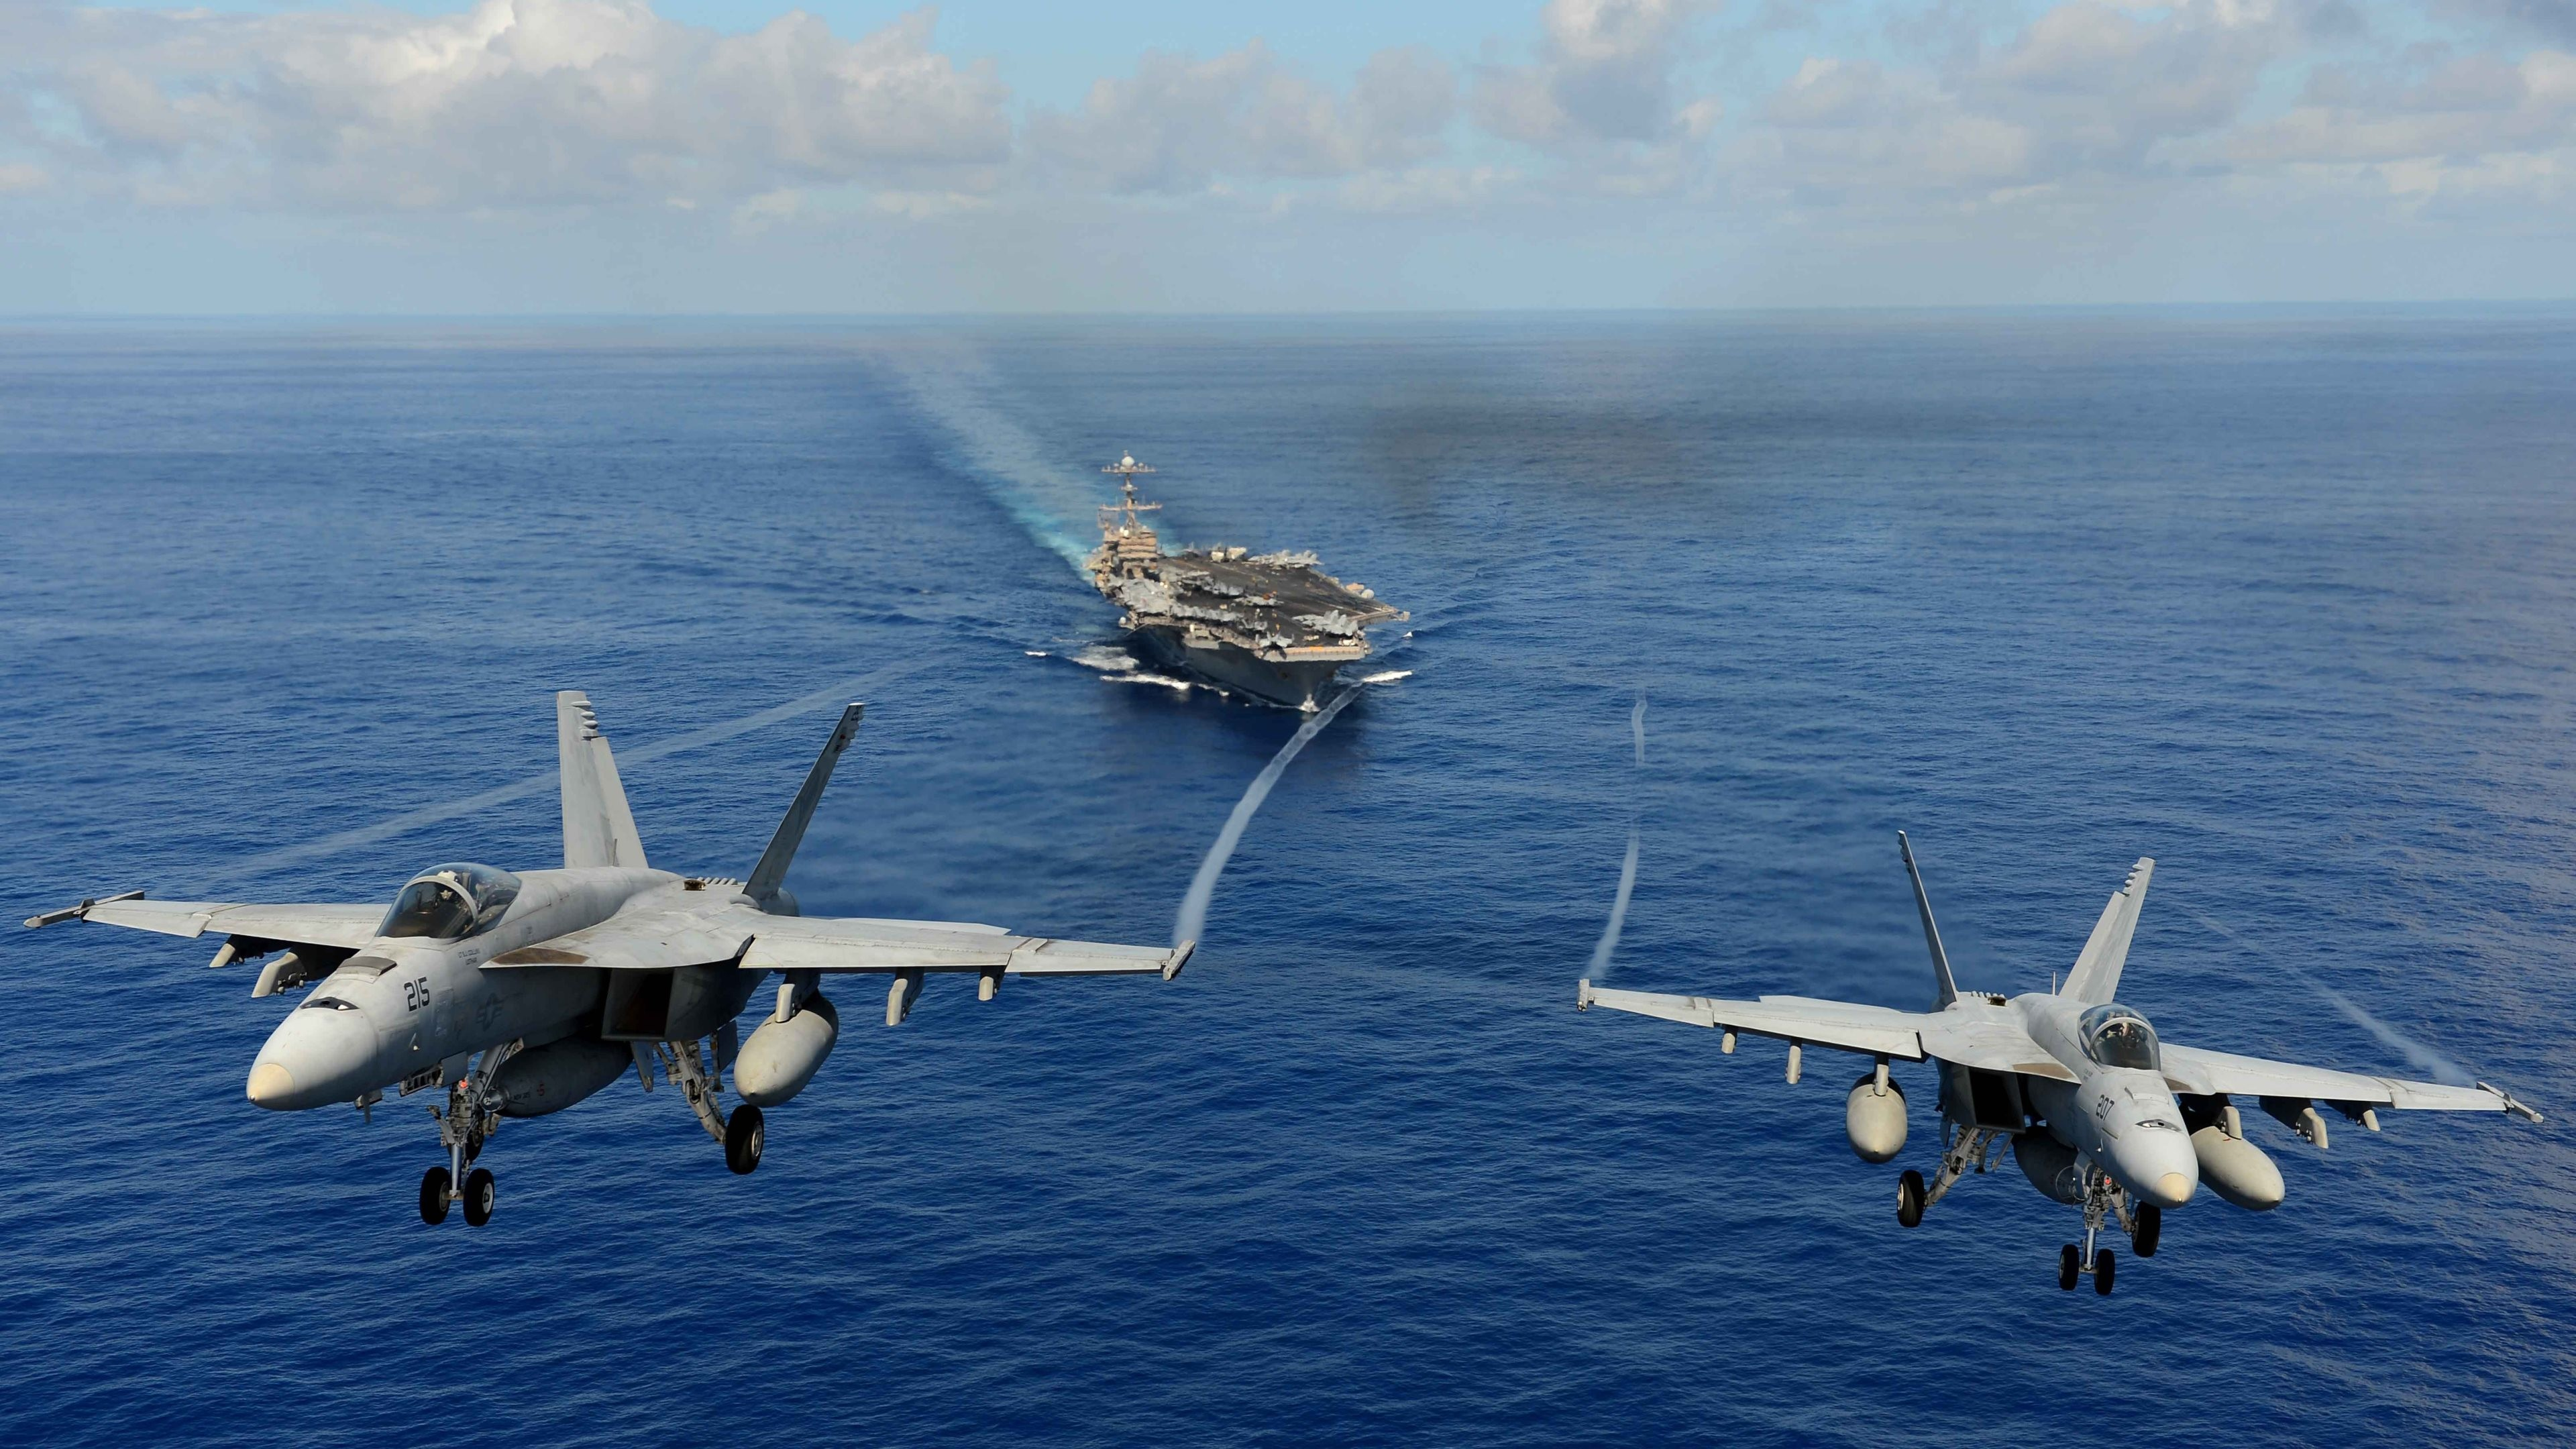 F/A 18 Super Hornet Wallpapers Wallpapers) – HD Wallpapers